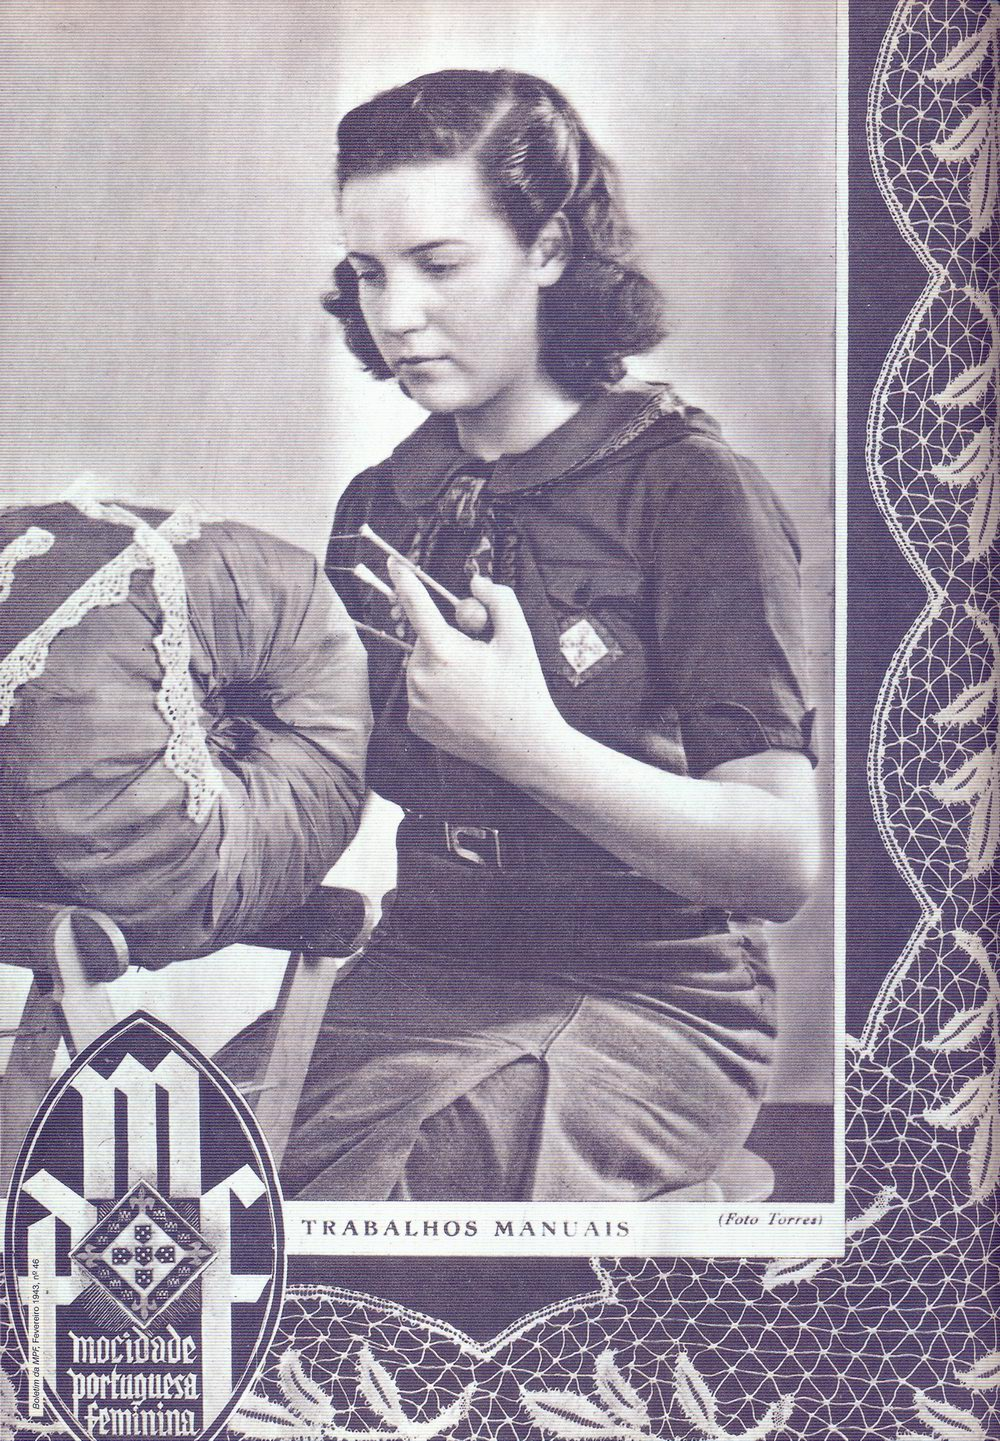 Uniformed member on the cover of the February 1949 issue of  Mocidade Portuguesa Feminina  .